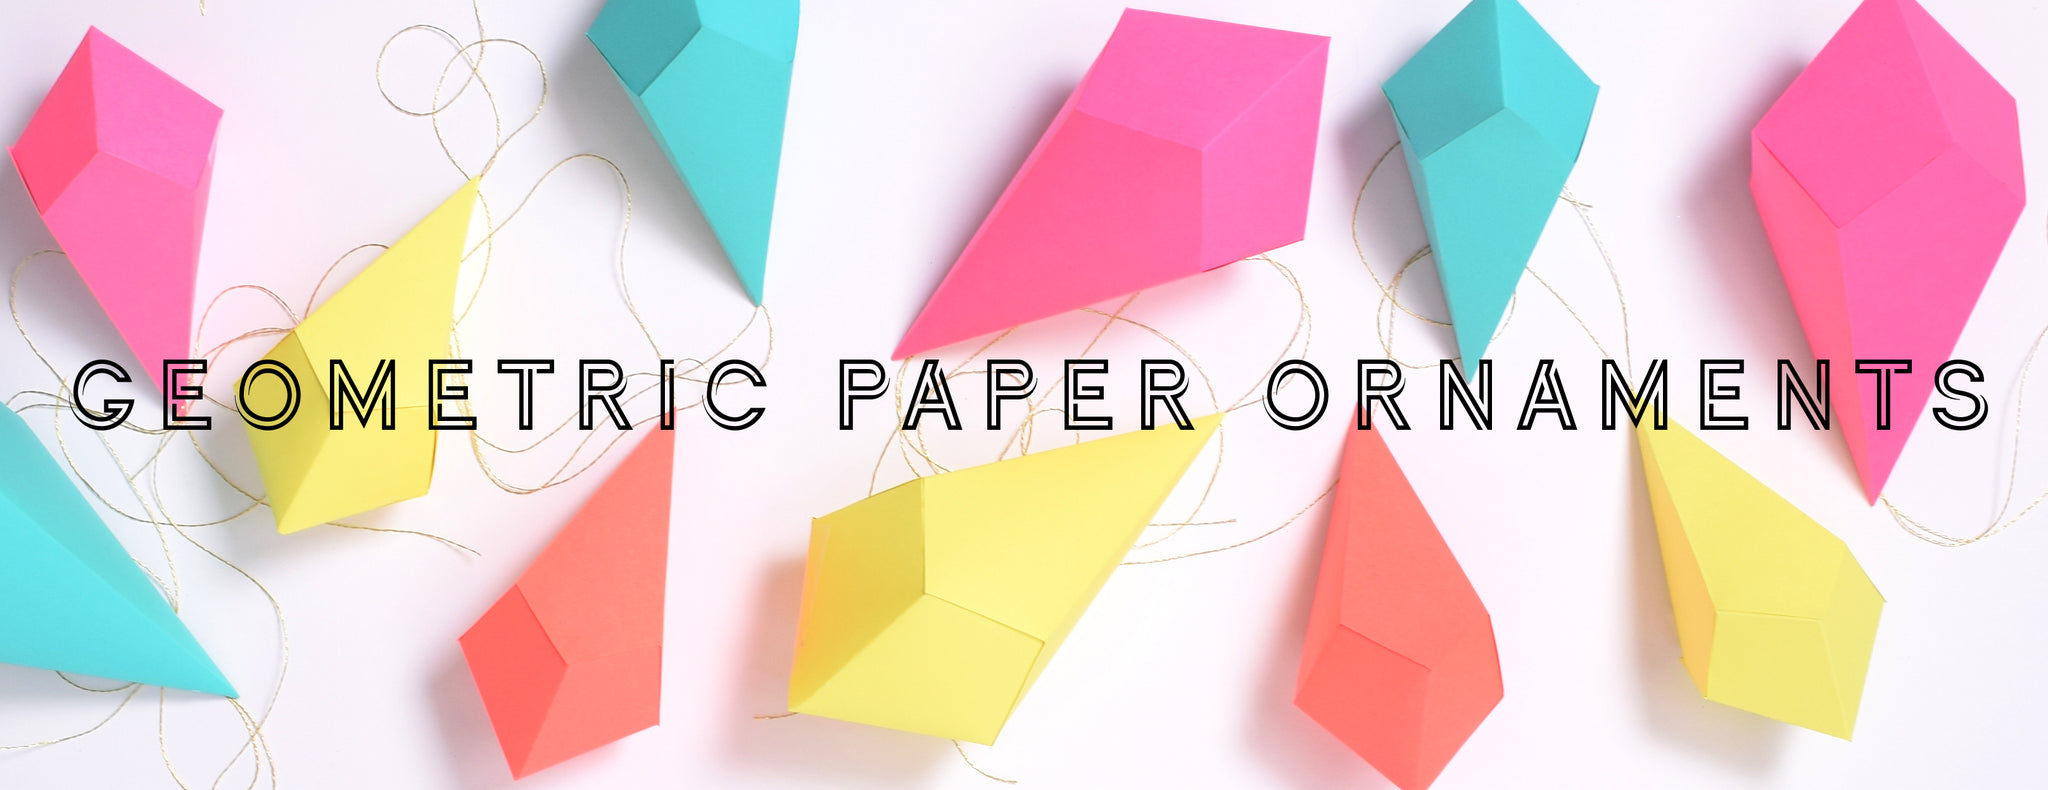 DIY - GEOMETRIC PAPER ORNAMENTS